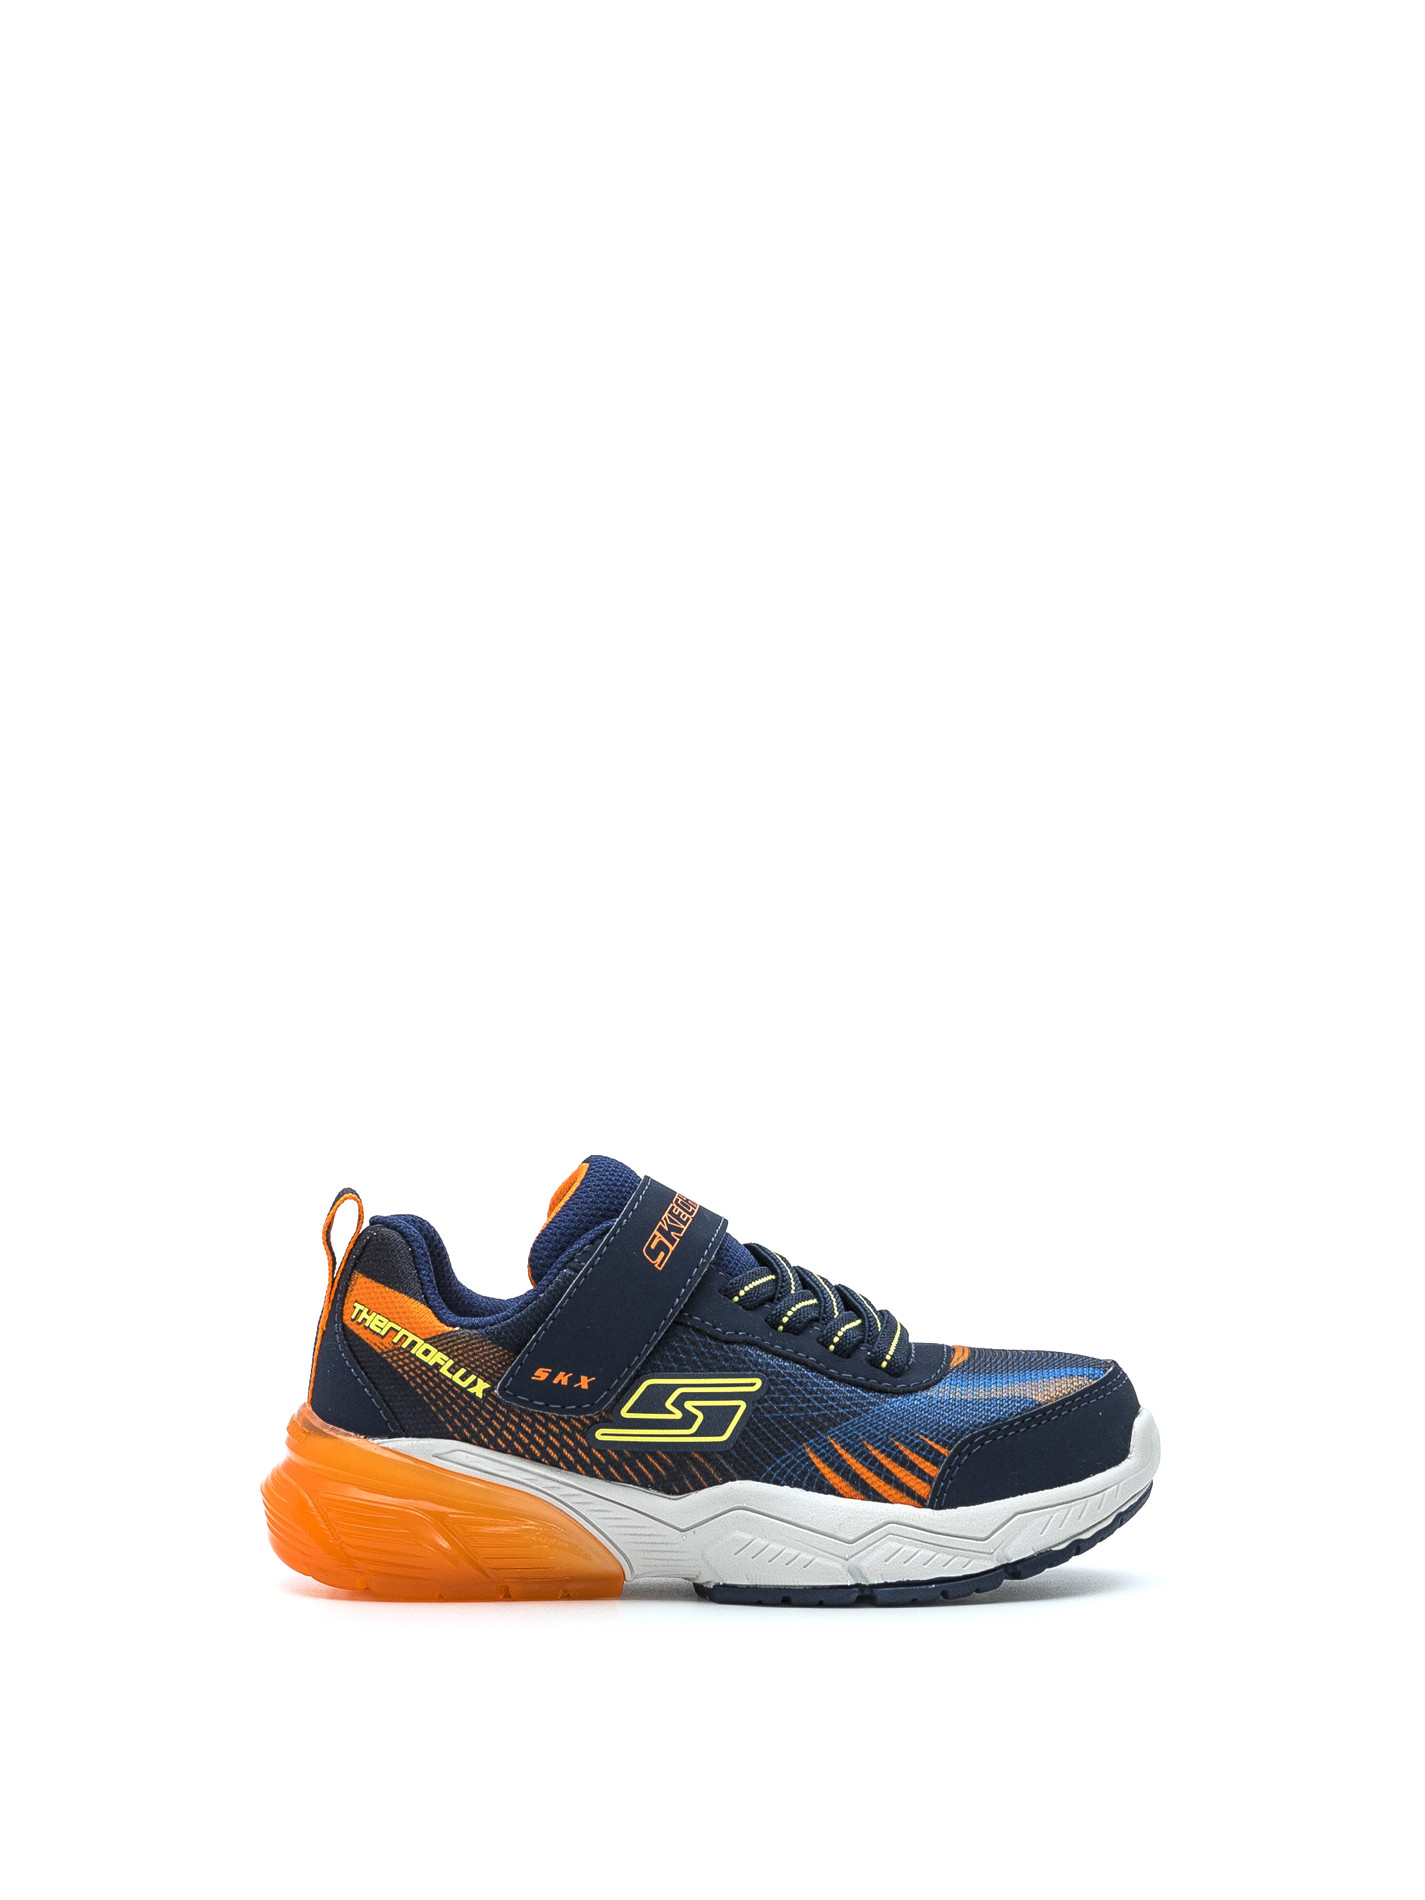 Thermofulx 2.0 ps - Navy